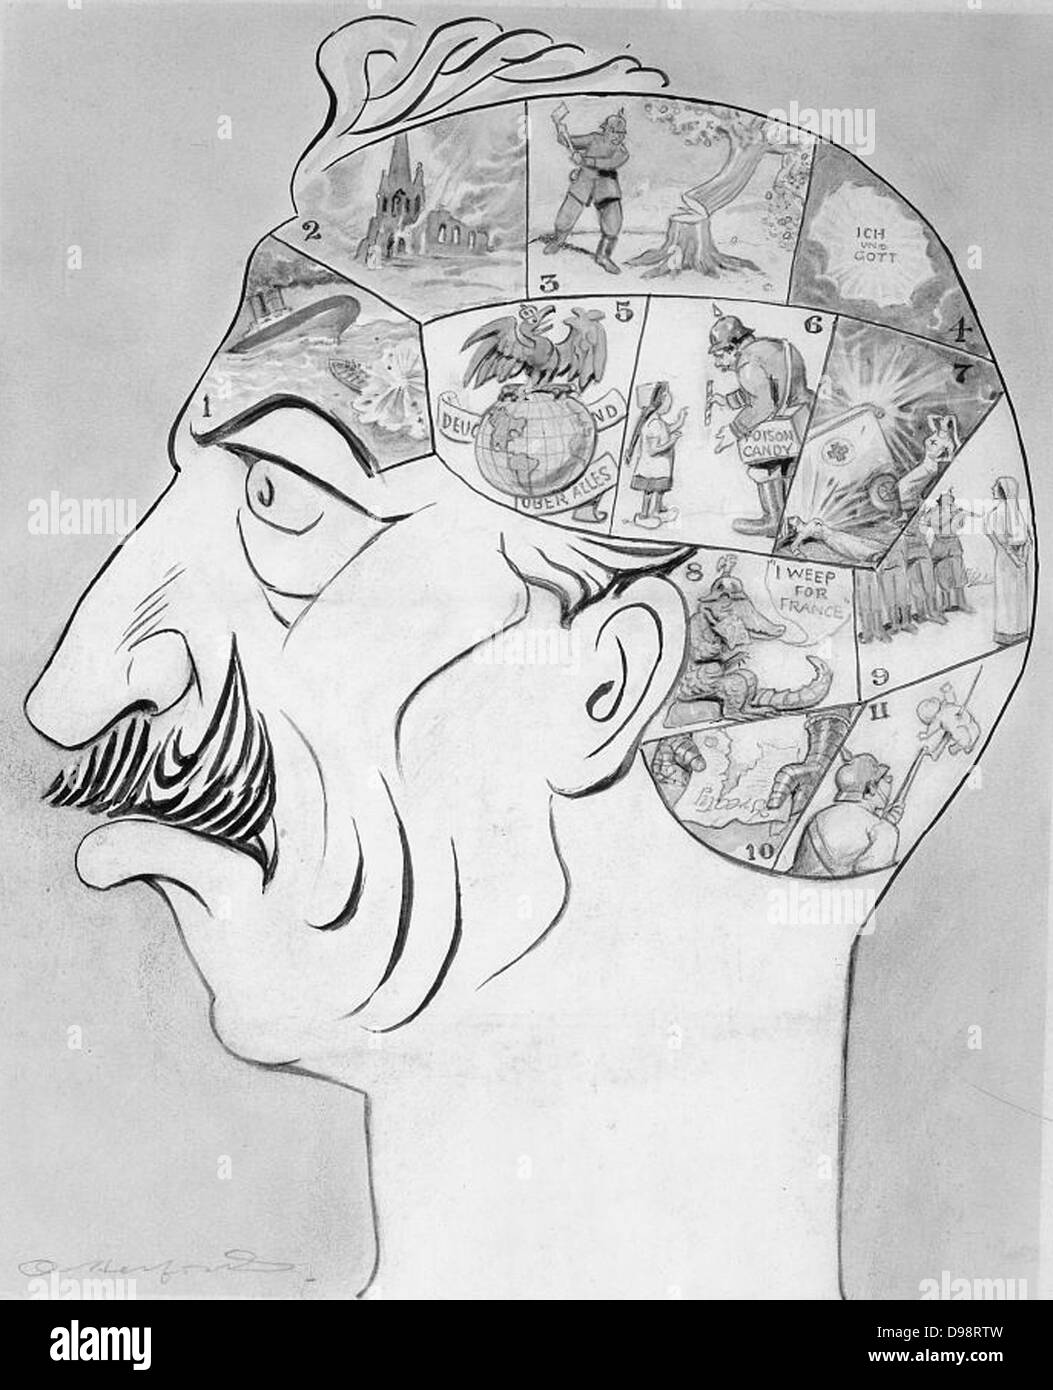 World War I 1914-1918 cartoon: Phrenological map of the German Kaiser's mind as a warped version the normal - Stock Image